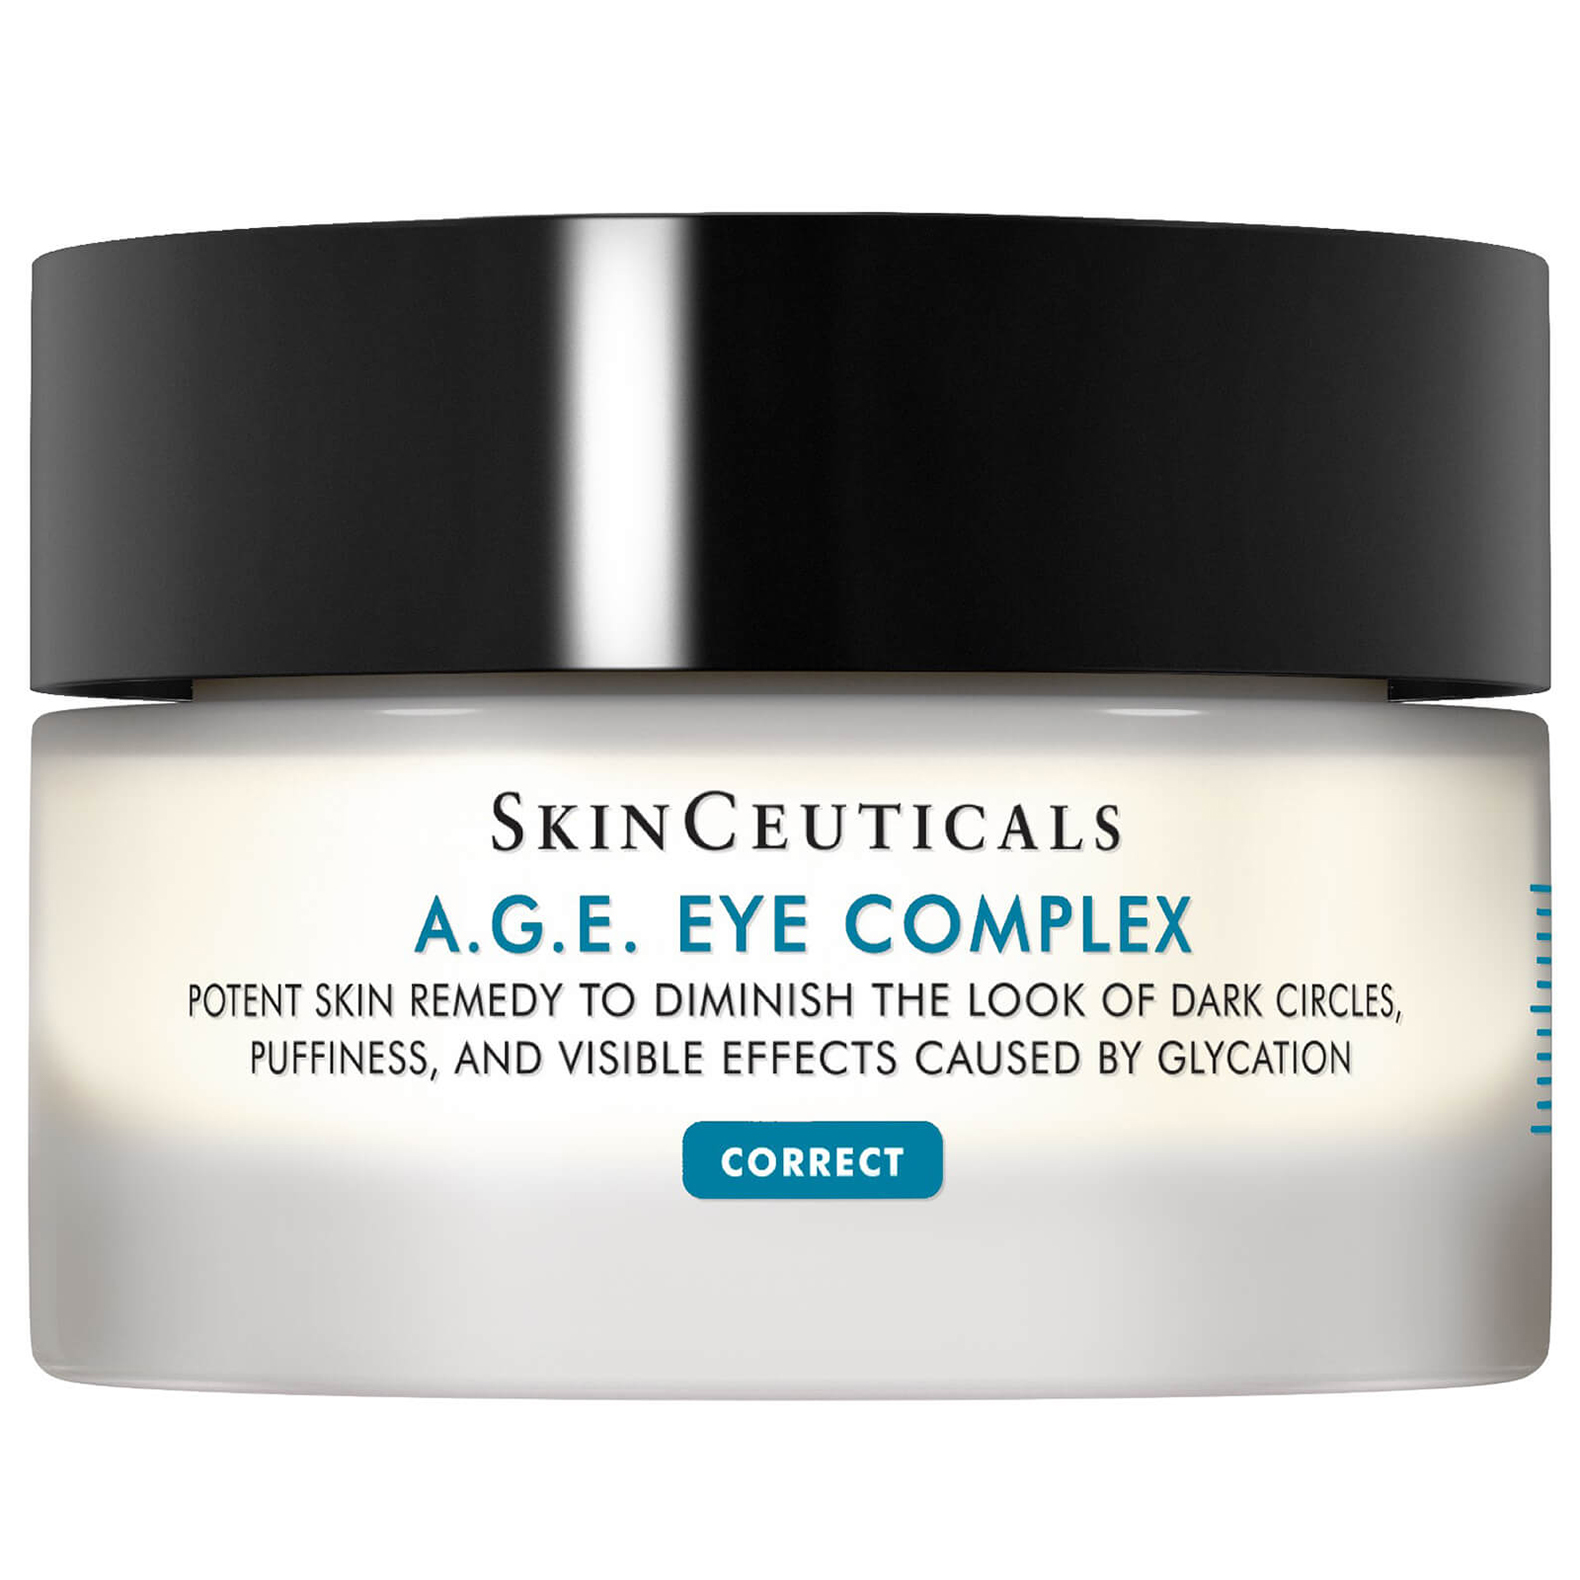 SkinCeuticals A.G.E. Eye Complex for Dark Circles